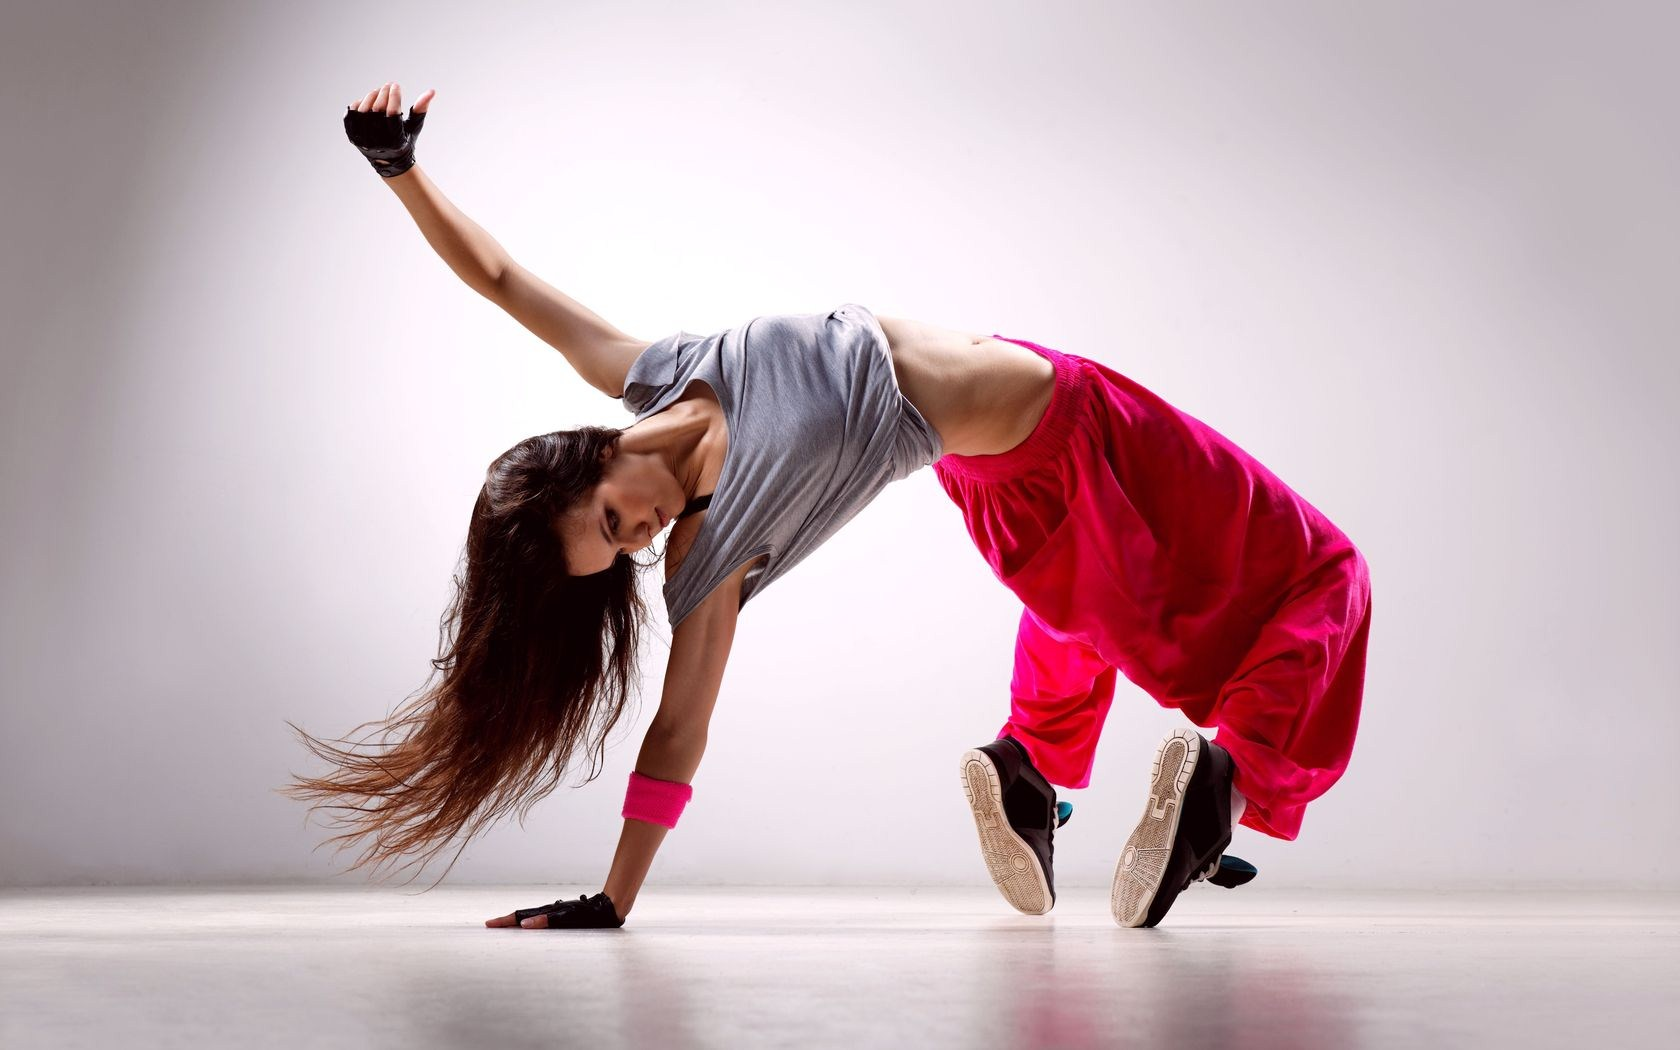 girl dance music movement wallpaper Dance Photography